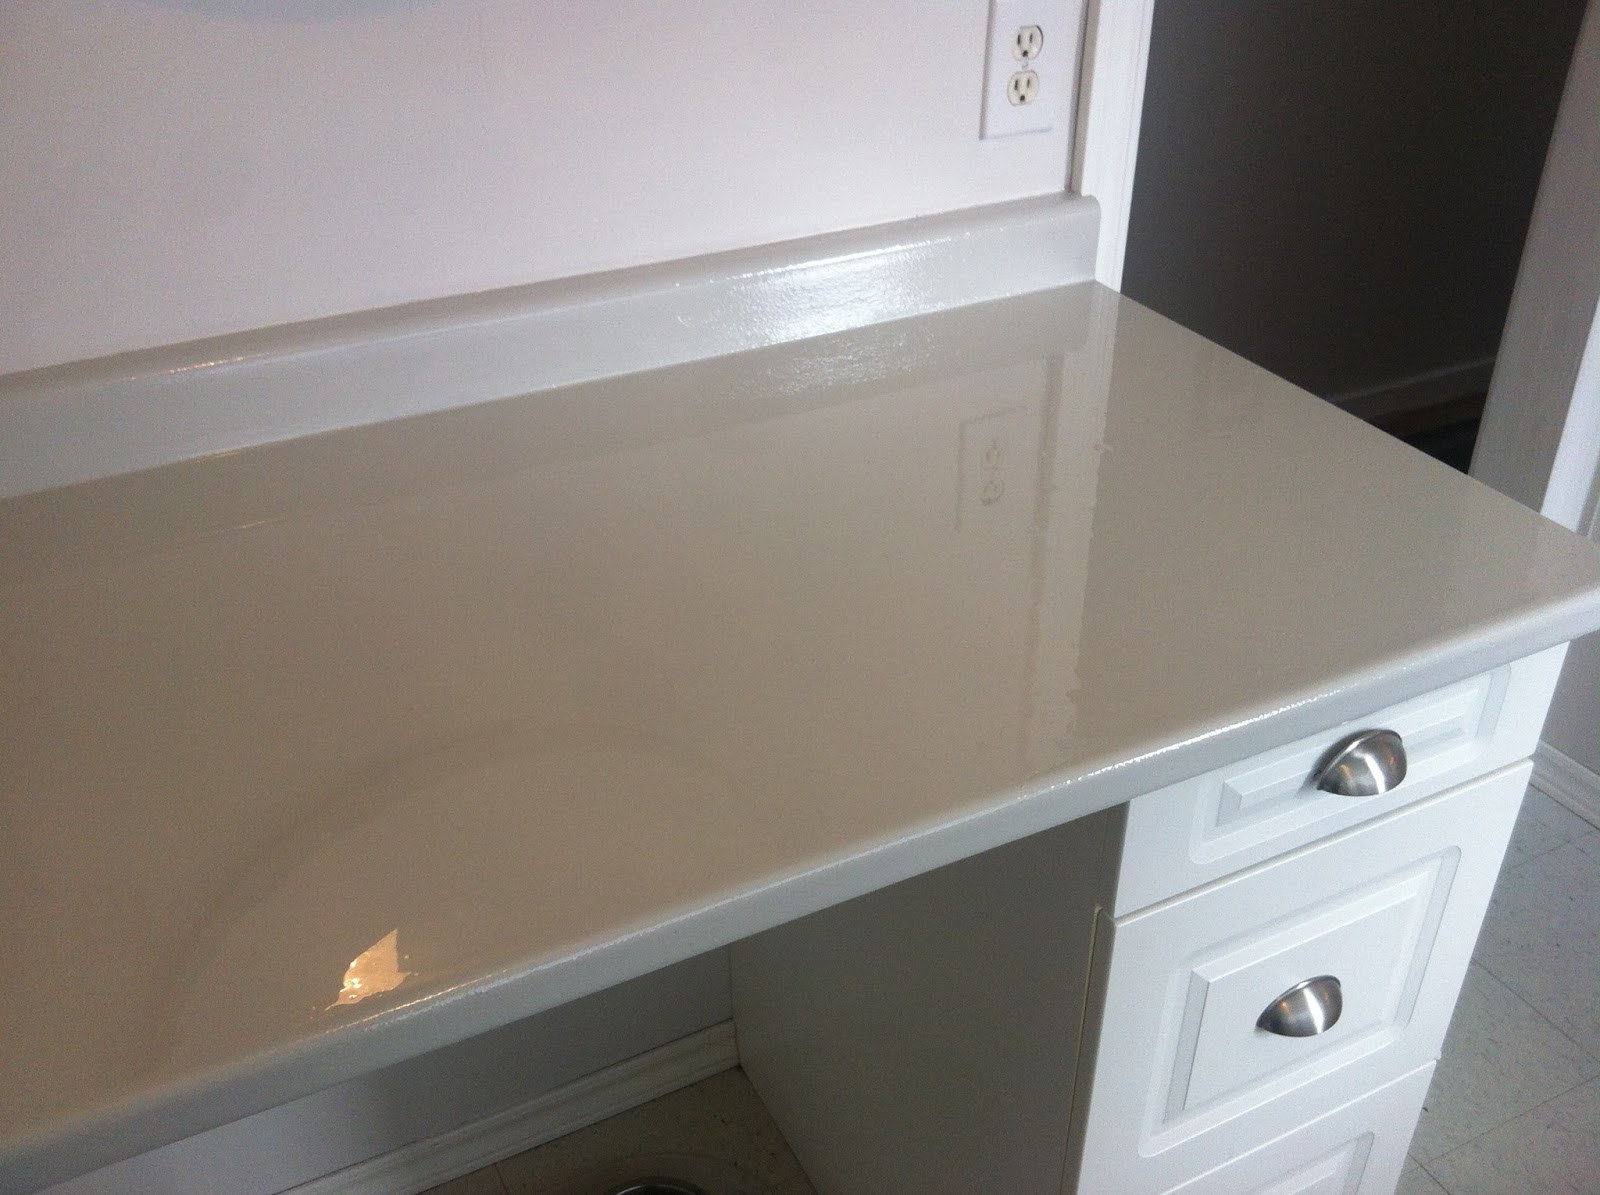 Countertop Paint Stainless Steel : ... if you too want to transform your ugly countertops from drab to fab